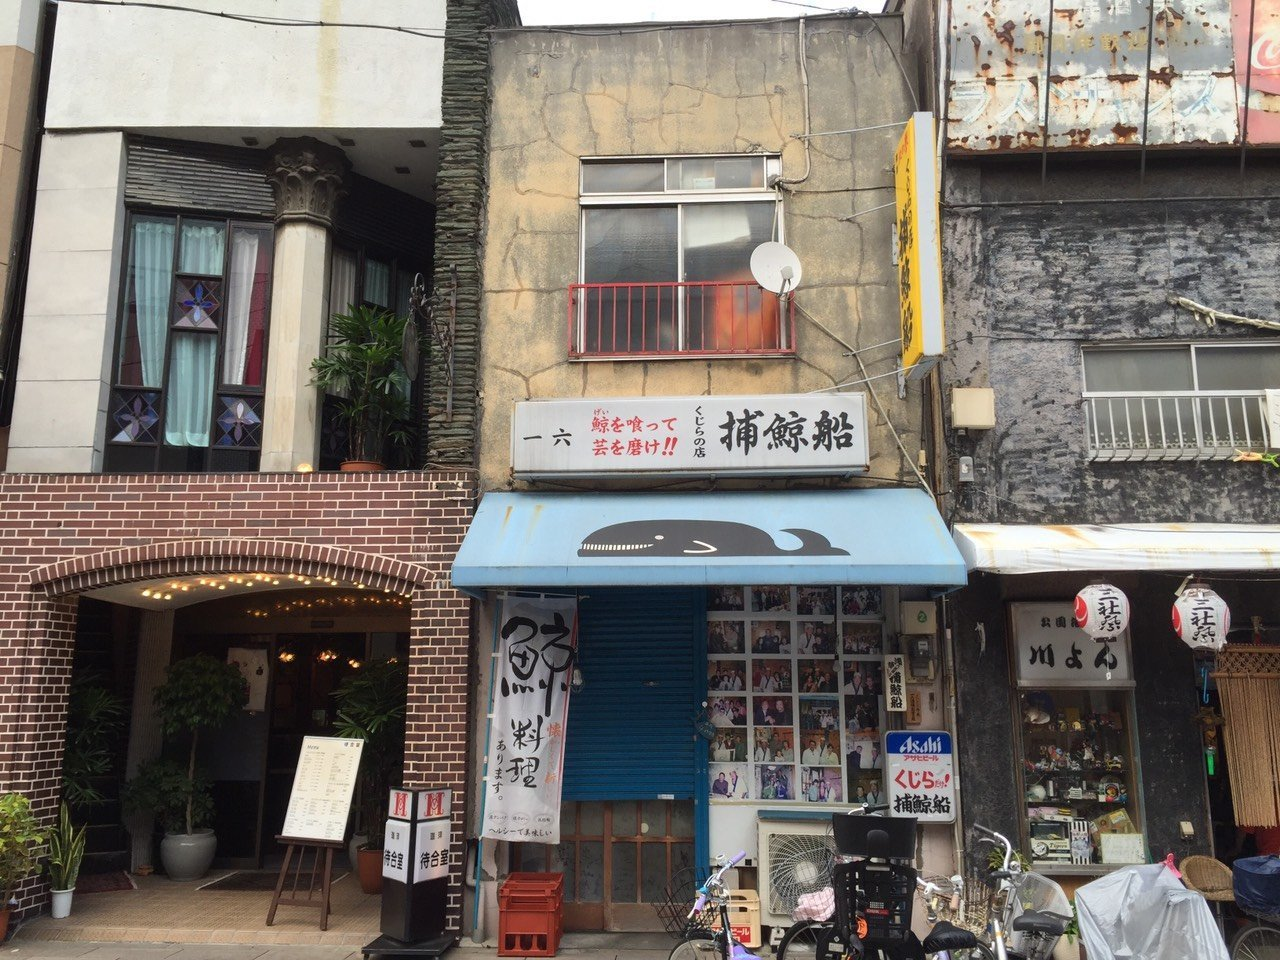 Restaurant Hogeisen loved by Takshi Kitano and other comedians